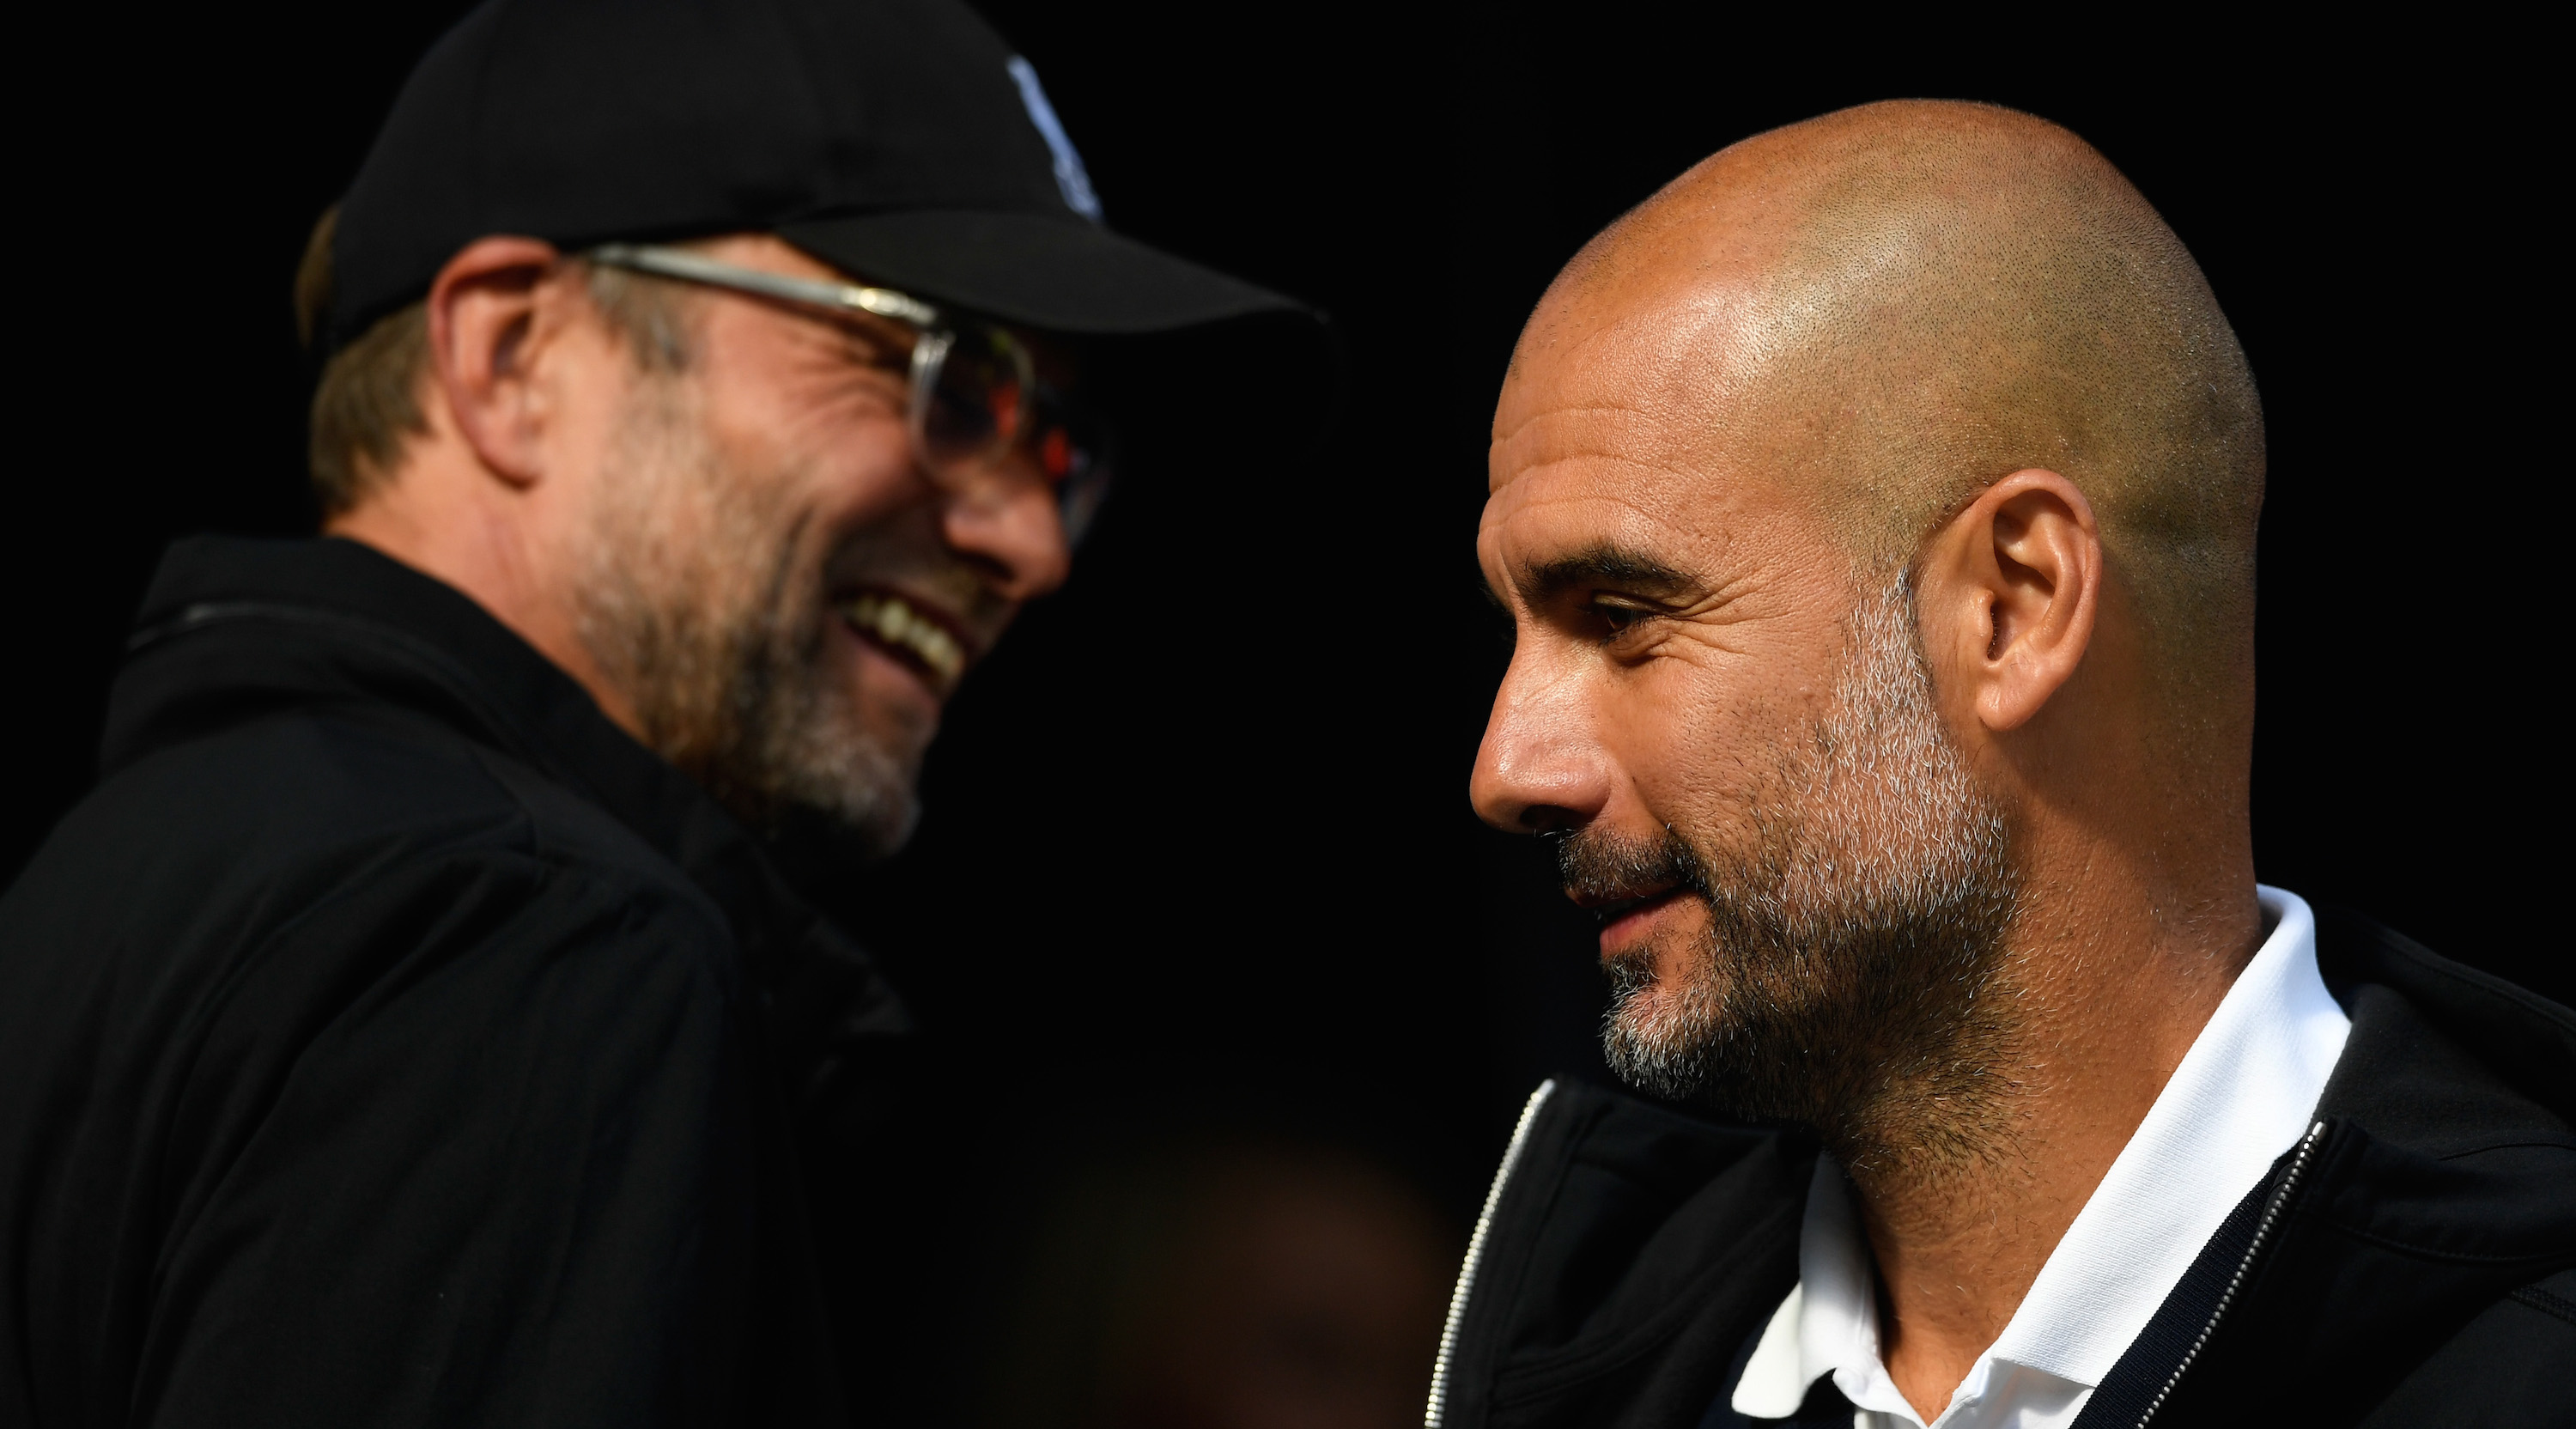 Jurgen Klopp, Manager of Liverpool smiles as Josep Guardiola, Manager of Manchester City looks on prior to the Premier League match between Manchester City and Liverpool at Etihad Stadium on September 9, 2017 in Manchester, England. (Photo by Stu Forster/Getty Images)